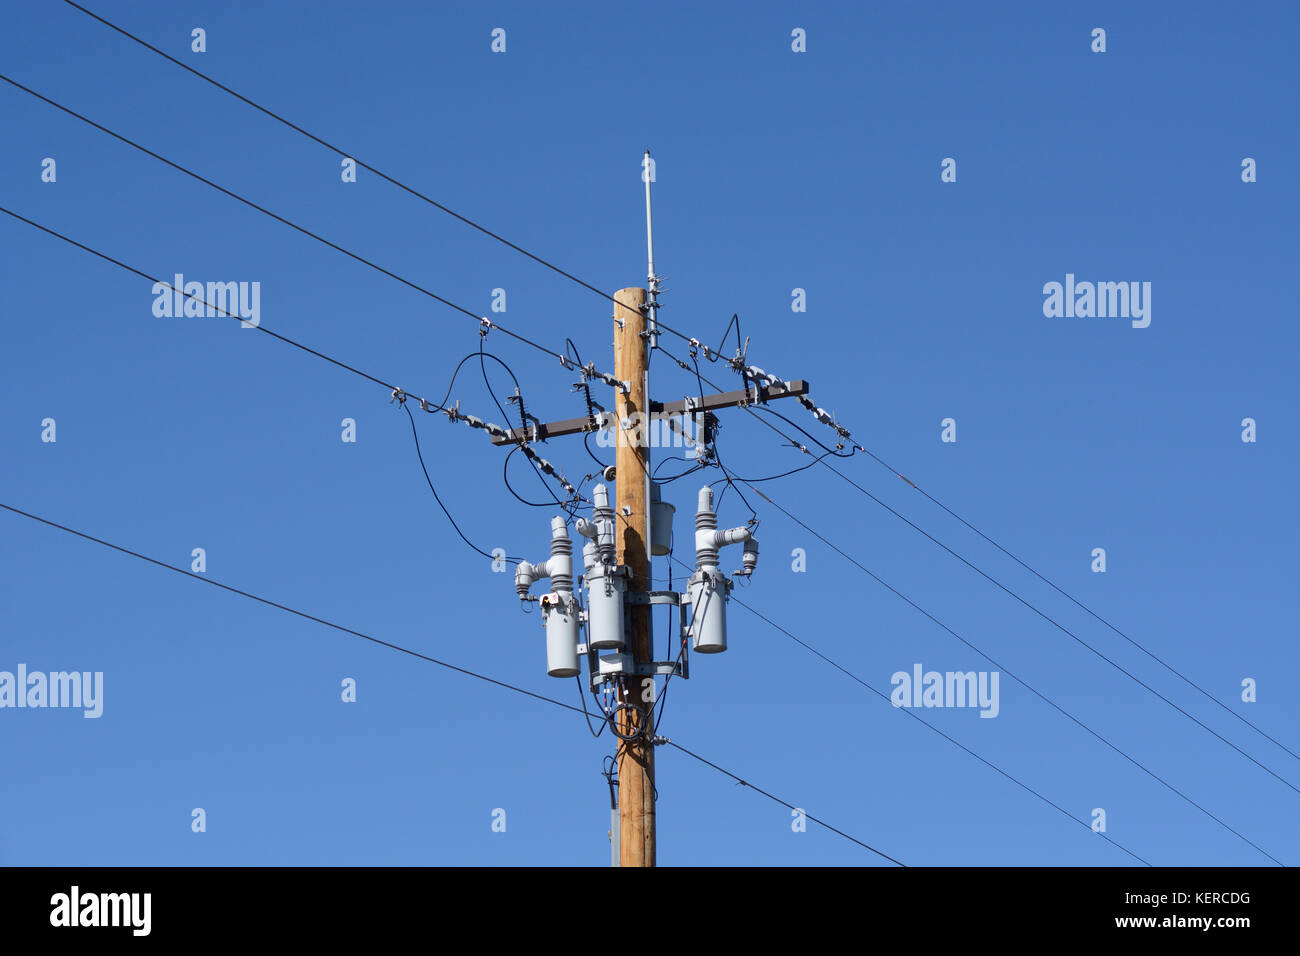 Electric power lines with power circuit breakers and antenna on new wooden pole - Stock Image